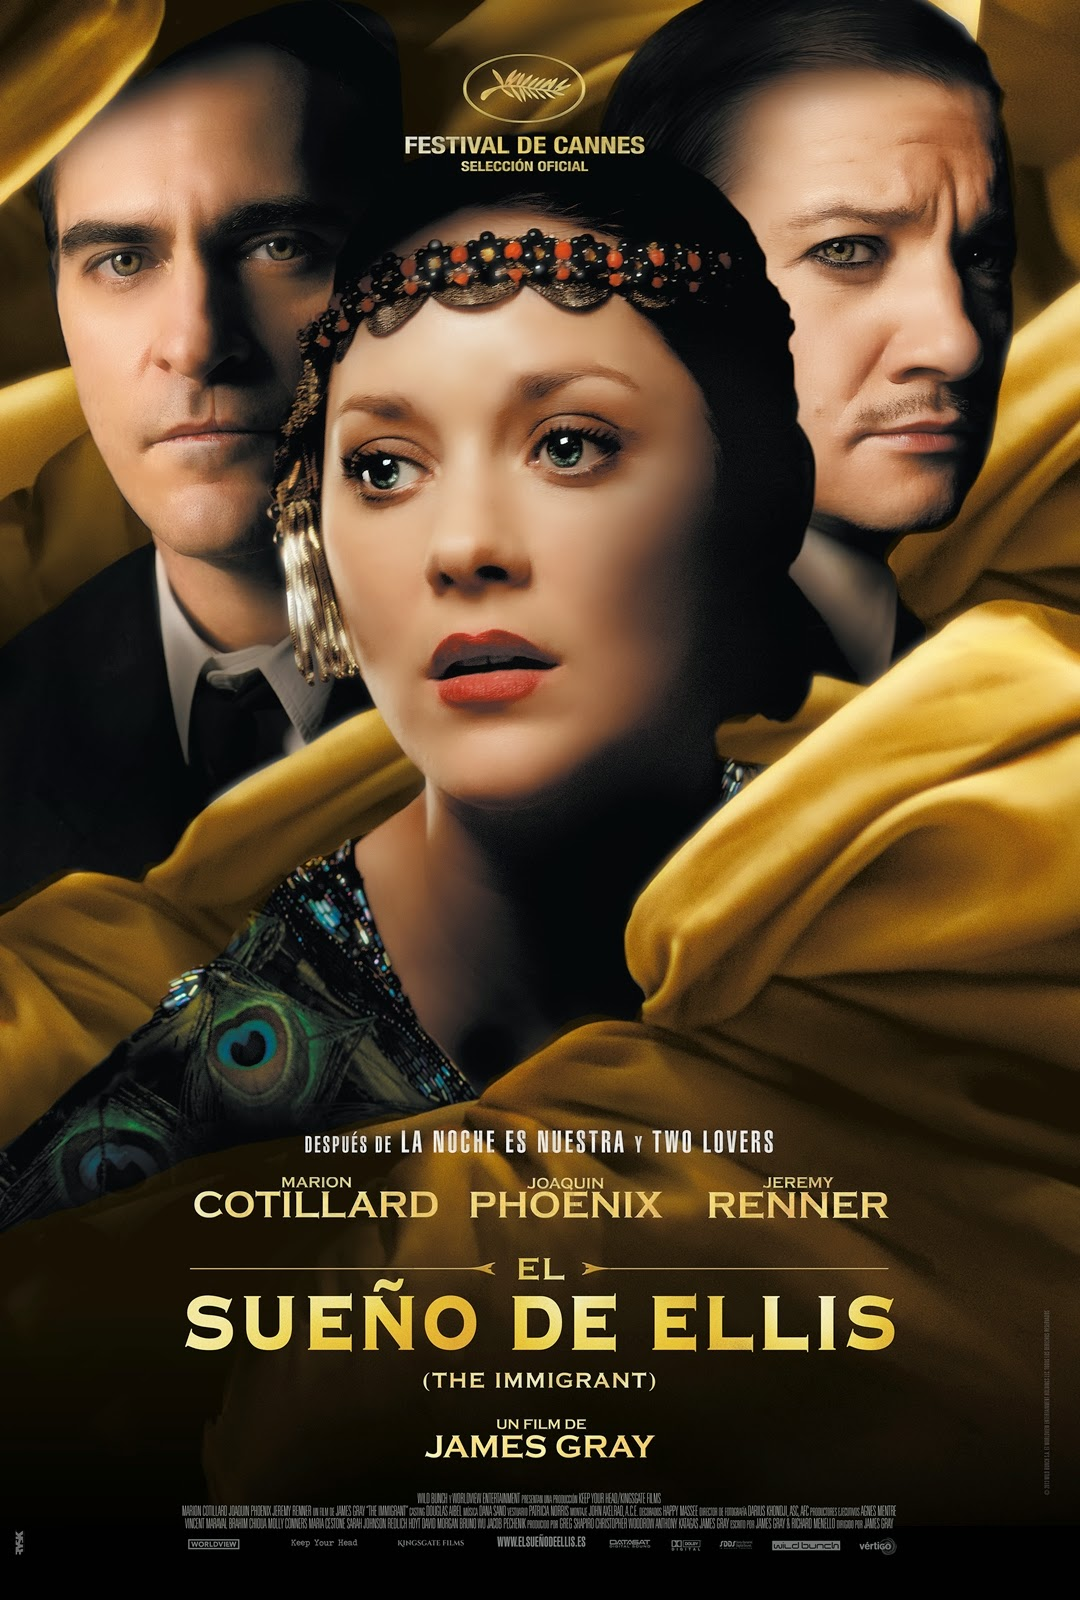 El sueño de Ellis (The Immigrant)